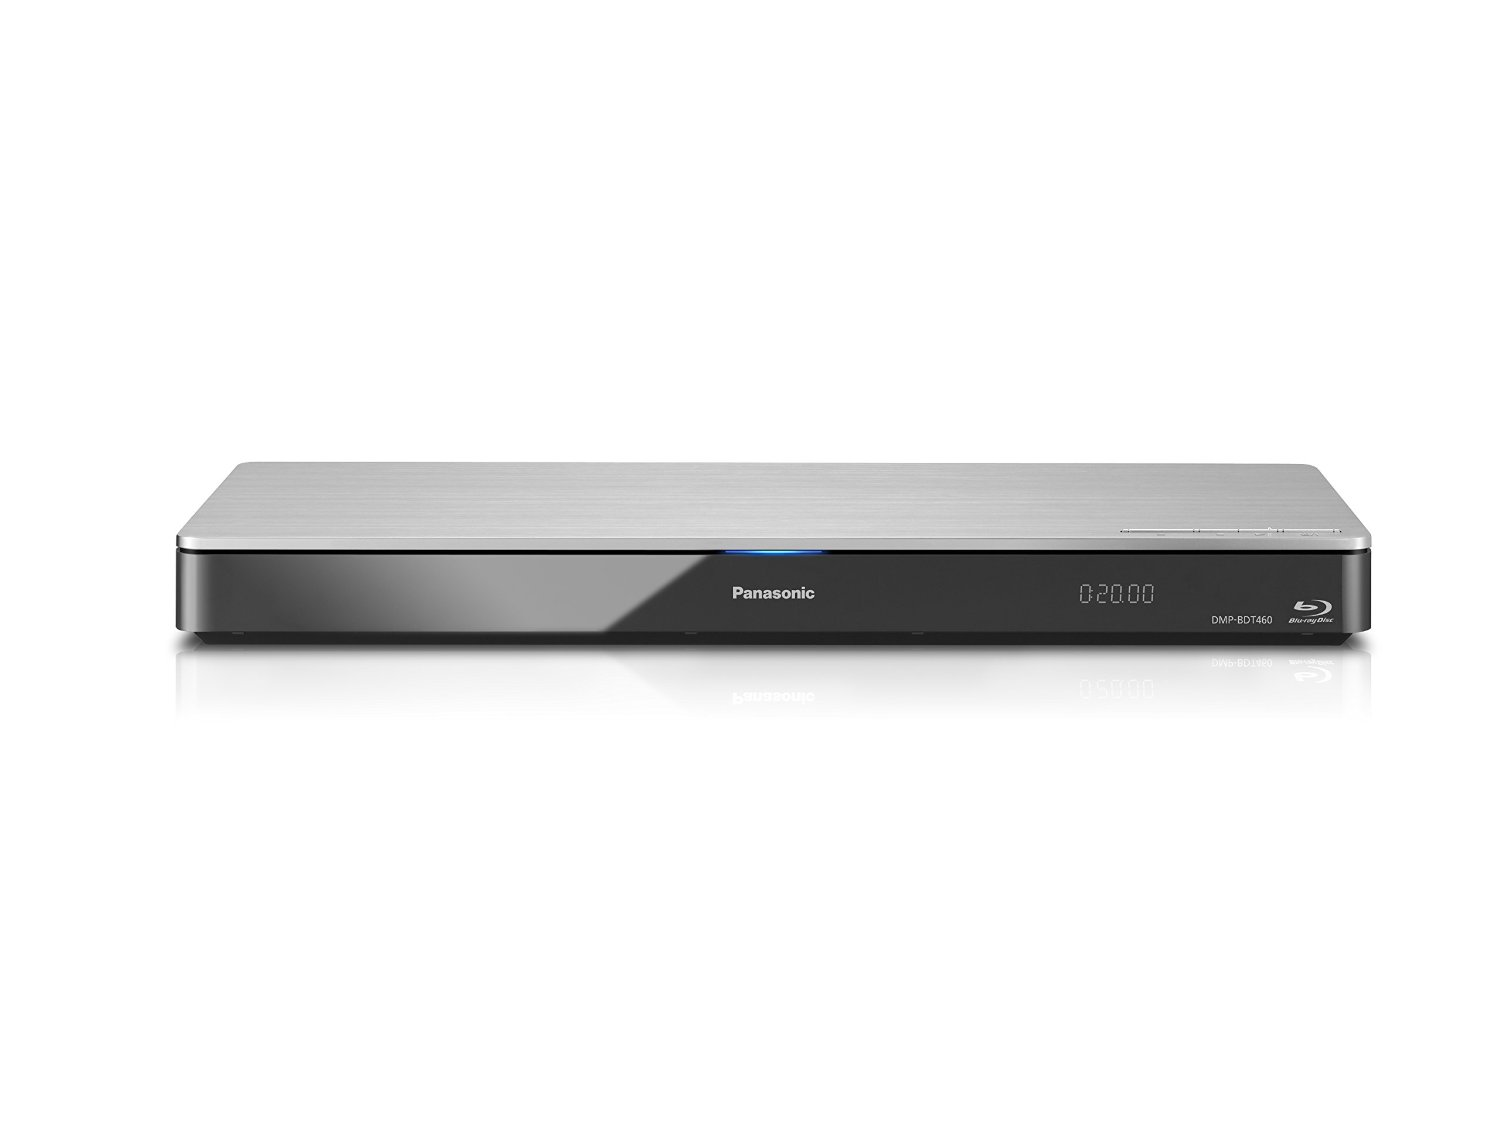 Panasonic DMP-BDT460 Blu Ray DVD Player with Twin HDMI